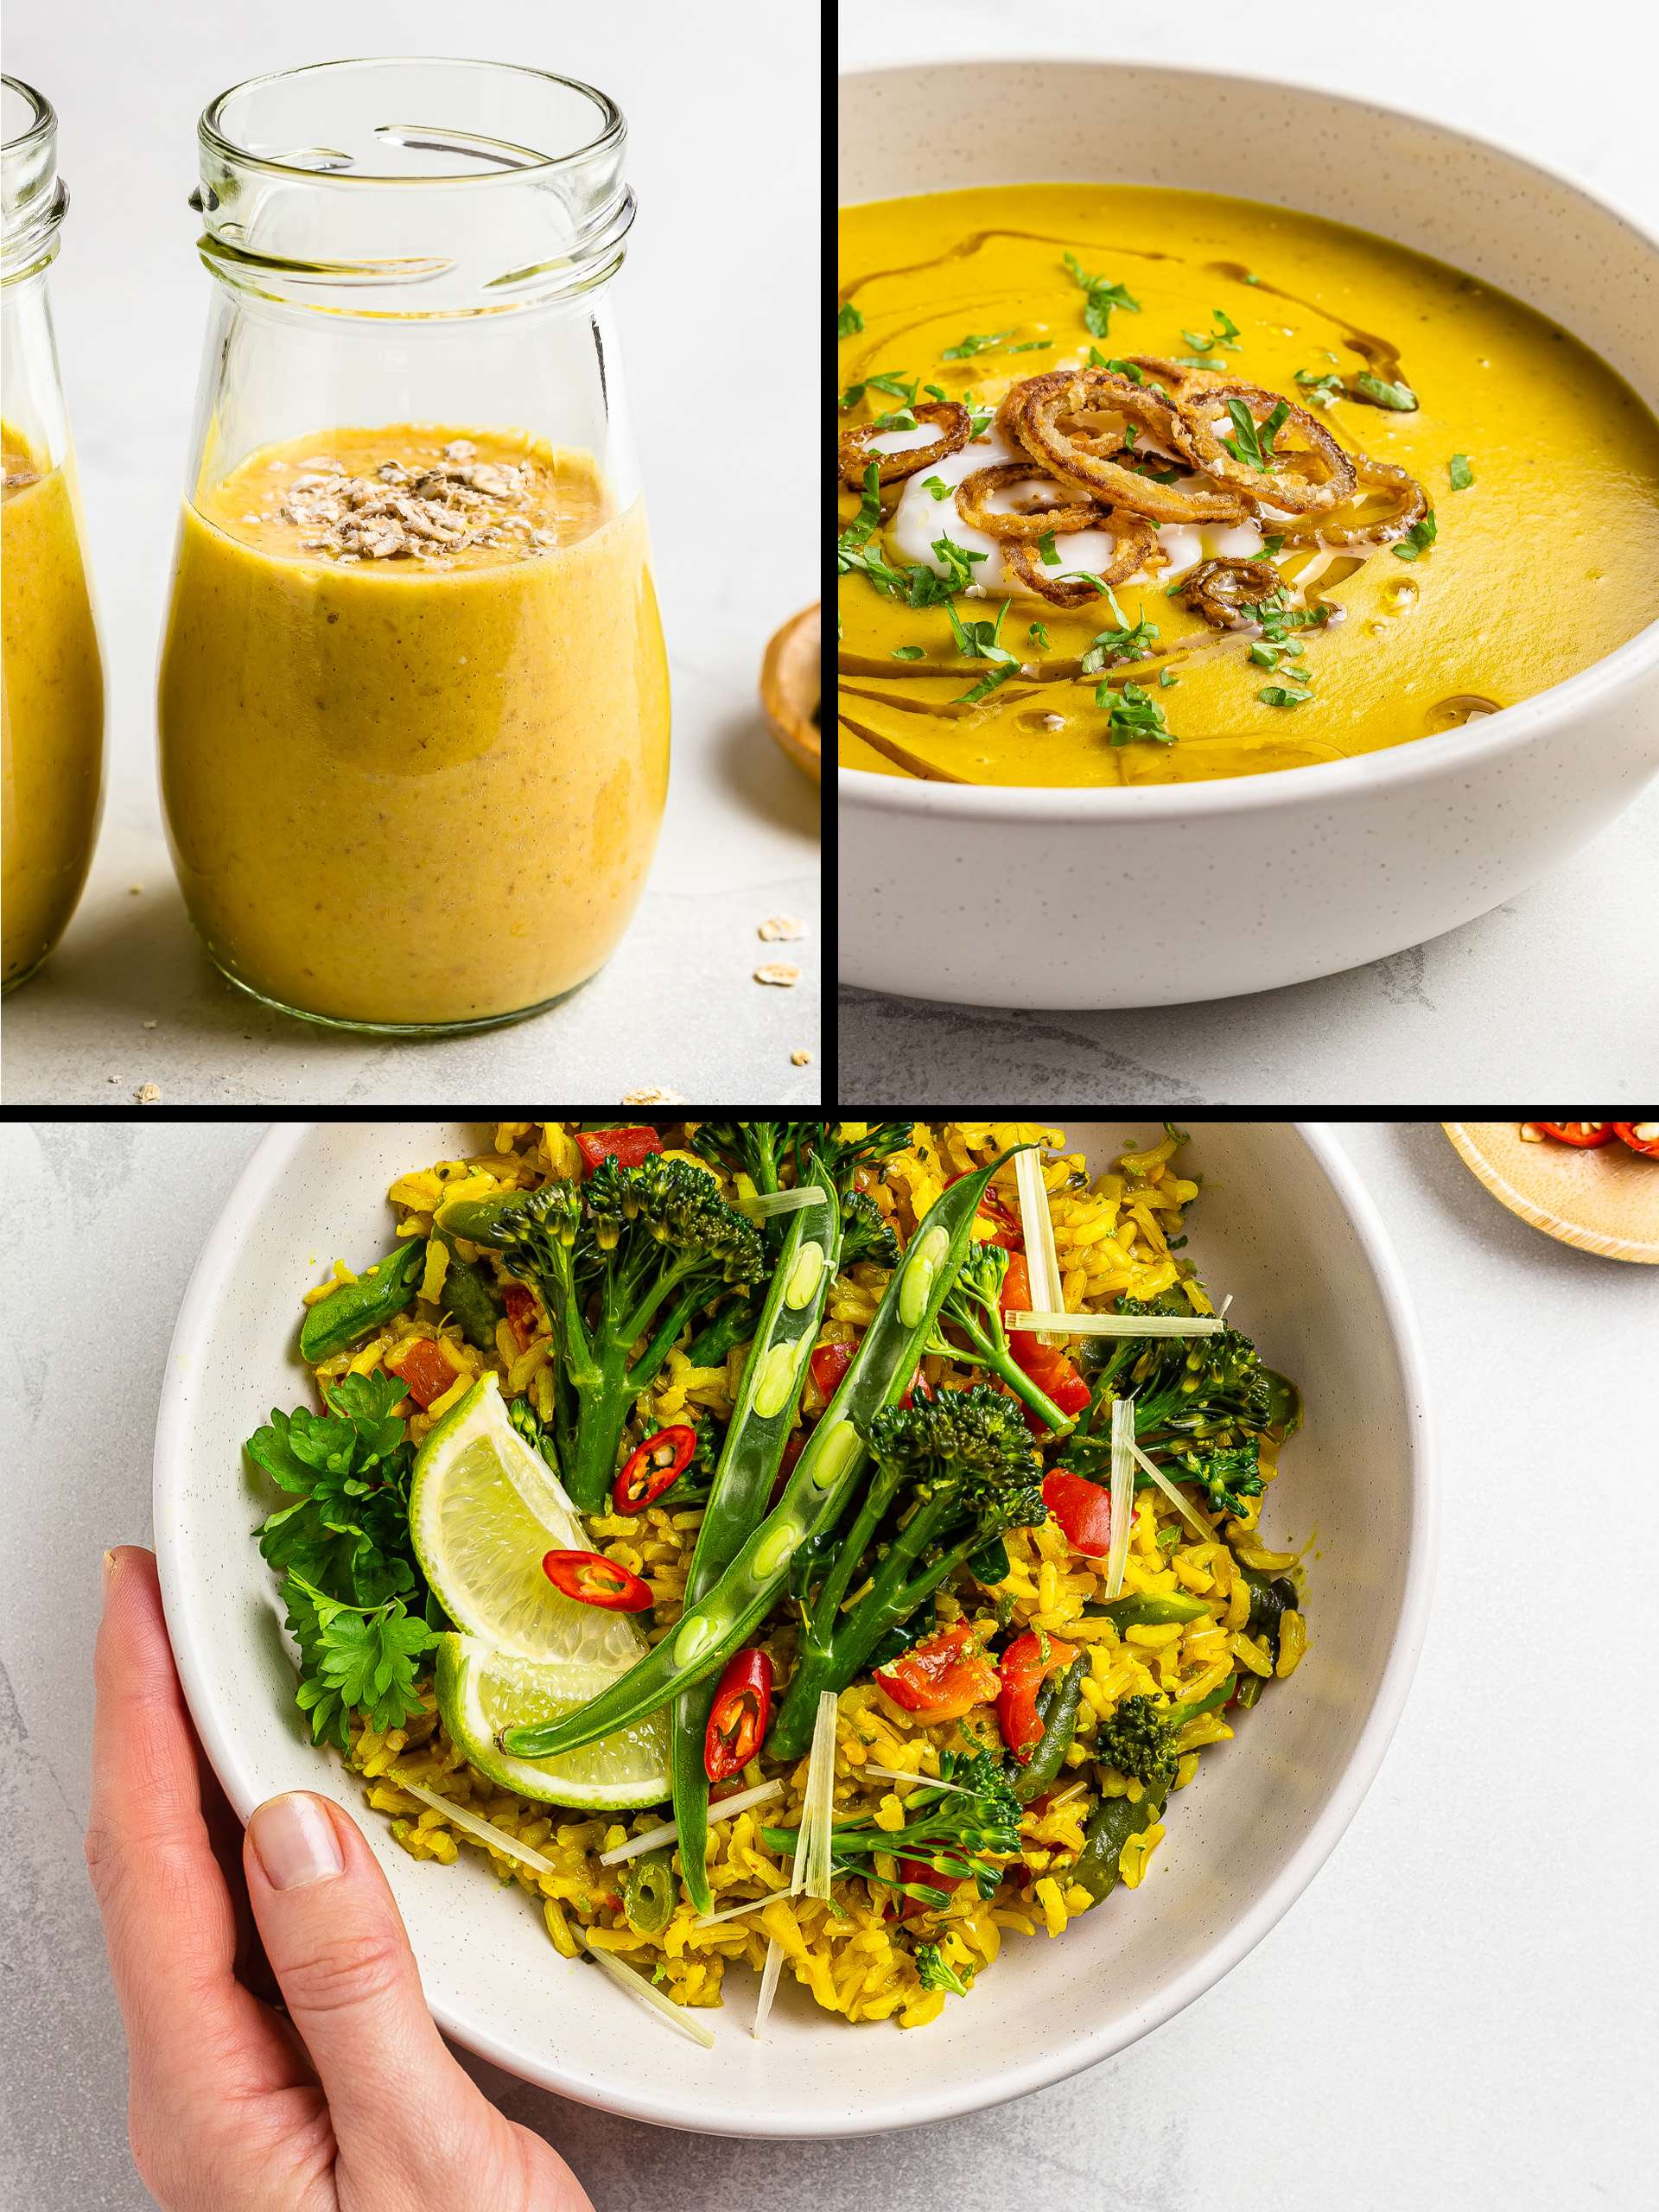 15 Healthy Ways to Add Turmeric to Your Diet